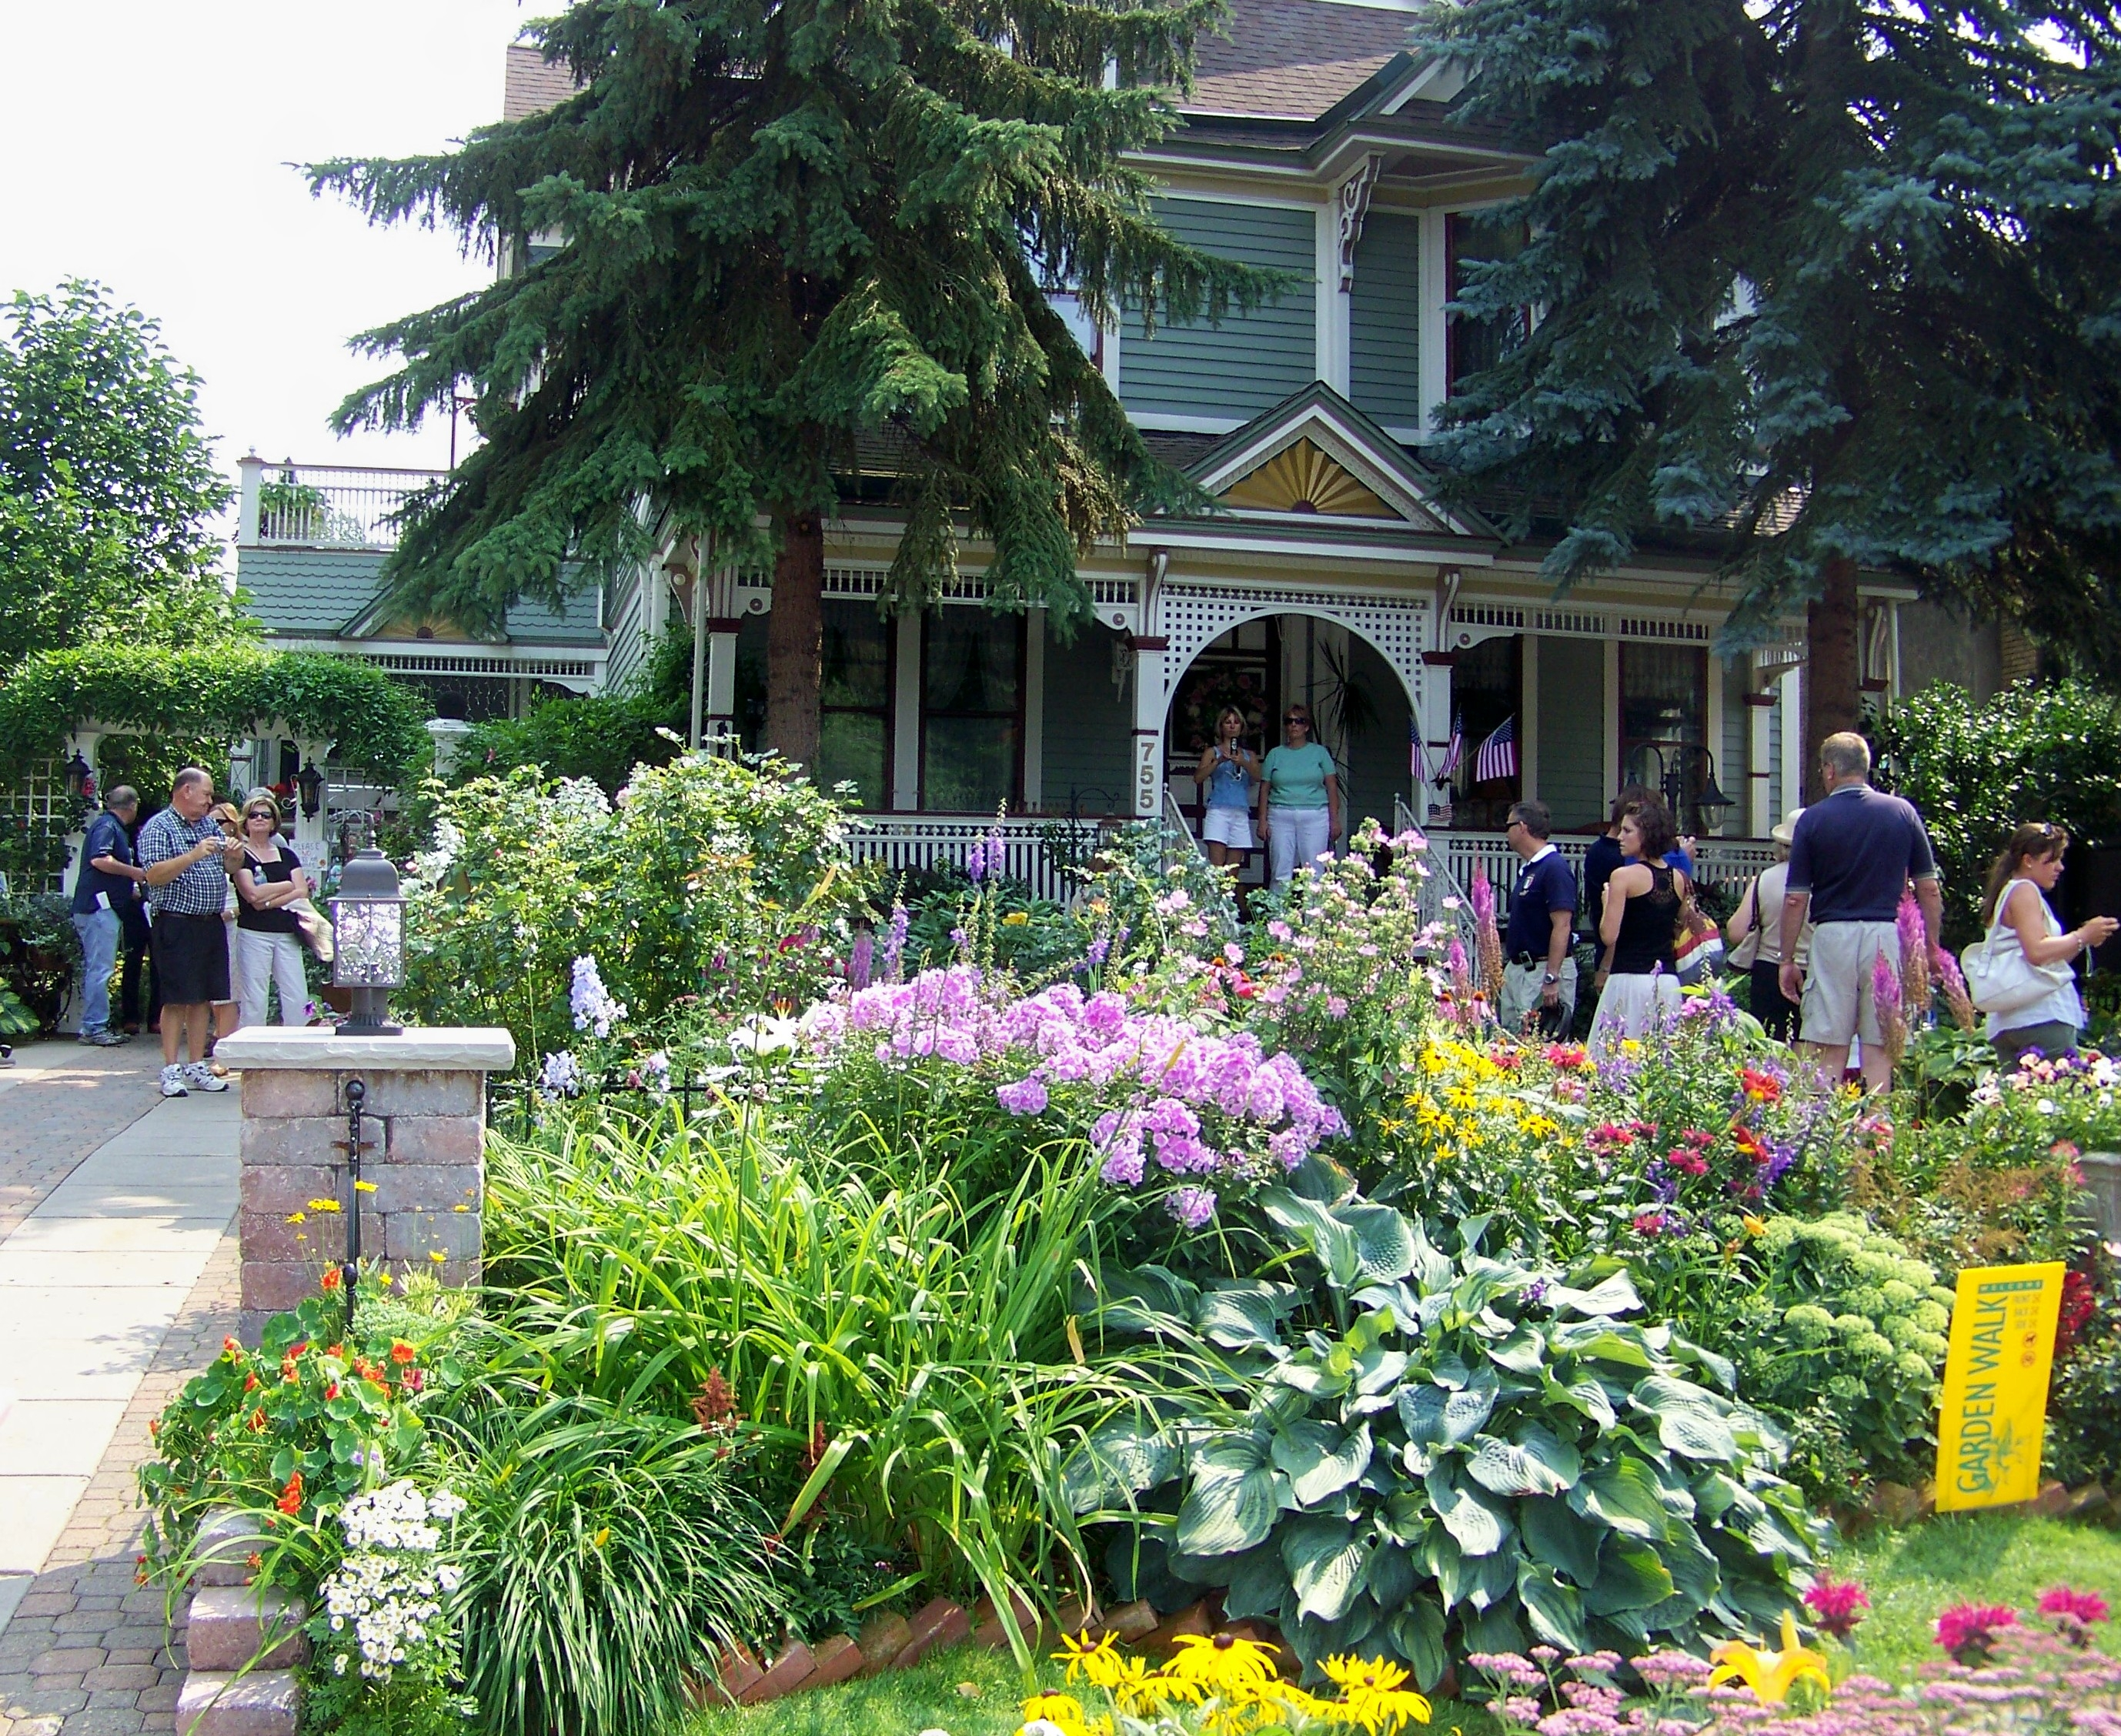 Buffalo Garden Walk: Enjoy One Of The Greater Niagara Region's Finest Summer